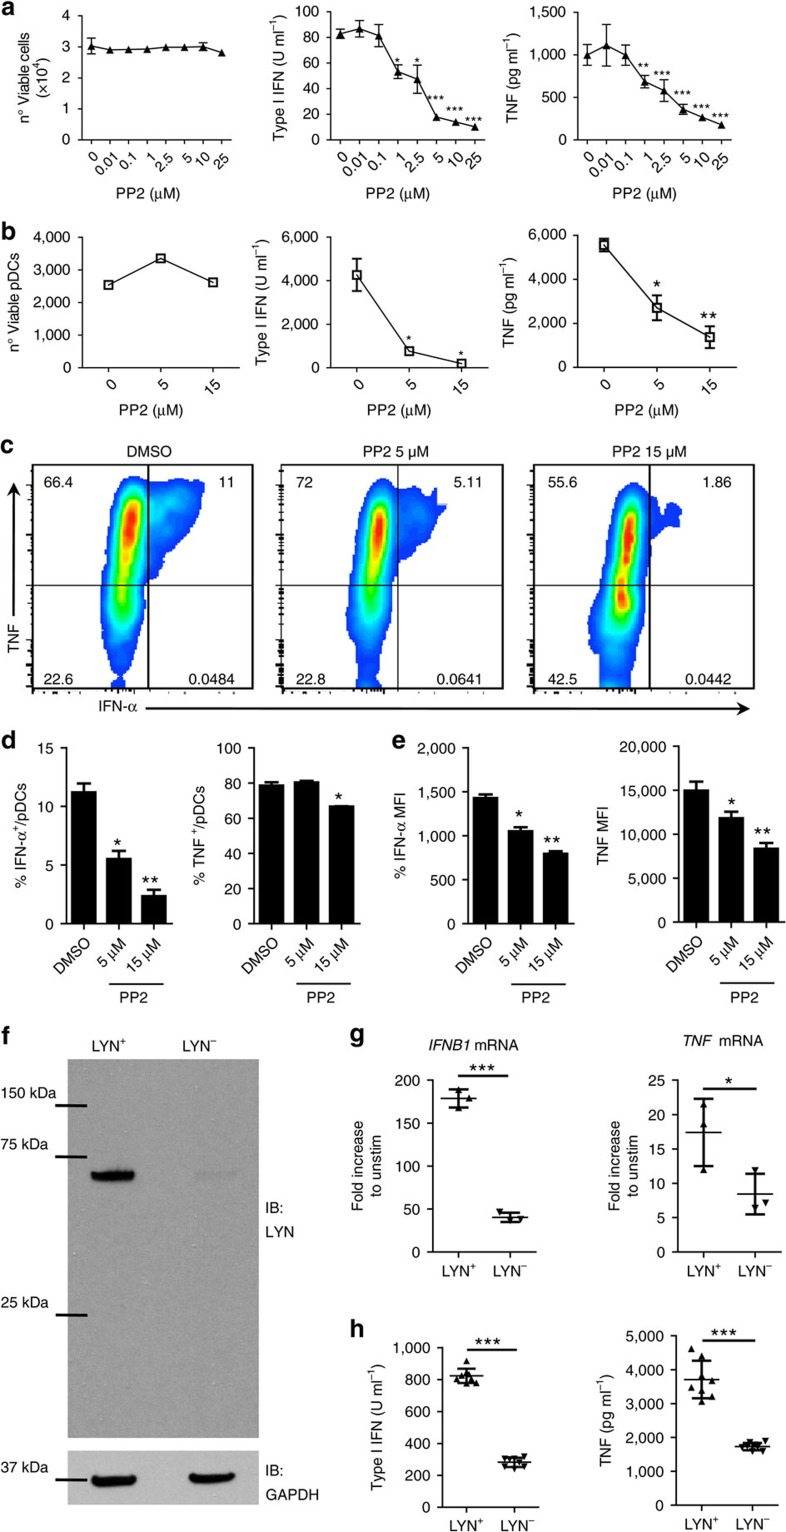 SFKs are critical for human pDC cytokine production. ( a , b ) CAL-1 cells ( a ) or human PBMCs ( b ) were pre-treated for 1 h with PP2 or DMSO control and then stimulated with R848 for 15 h. Viability was assessed by flow cytometry, while type I IFN and TNF protein levels in the supernatant were assessed by bioassay and ELISA, respectively. ( c – e ) Human PBMCs were pre-treated for 1 h with PP2 (5 and 15 μM) or DMSO control and then stimulated with R848 for 6 h and subsequently intracellular stained for TNF and IFN-α. FACS plots show the co-expression of TNF and IFN-α in gated pDCs ( c ). The percentage of pDCs single positive to IFN-α and TNF staining ( d ). MFI of IFN-α and TNF in gated pDCs ( e ). ( f ) LYN and GAPDH protein expression in unmodified CAL-1 cells (LYN + ) and CAL-1 cells ablated for LYN by CRISPR/Cas9 (LYN − ) was determined by immunoblot. ( g , h ) The expression of IFN-β and TNF mRNAs was determined by qPCR ( g ) and the level of protein in the supernatant was quantified by bioassay or ELISA ( h ) in LYN + and LYN − CAL-1 cells after 1 or 15 h stimulation with R848, respectively. In g , the mRNA expression were normalized against GAPDH expression and plotted as mRNA fold increase compared to unstimulated cells. Data are representative of two ( g ) or three ( a , f , h ) independent experiments or four donors processed separately ( b – e ). Graphs depict mean±s.d. of replicates within one representative experiment/donor. Dunnett's multiple comparisons test ( a , b , d , e ) and two-ways Student's t -test ( f , g ) were used for statistical analyses. * P